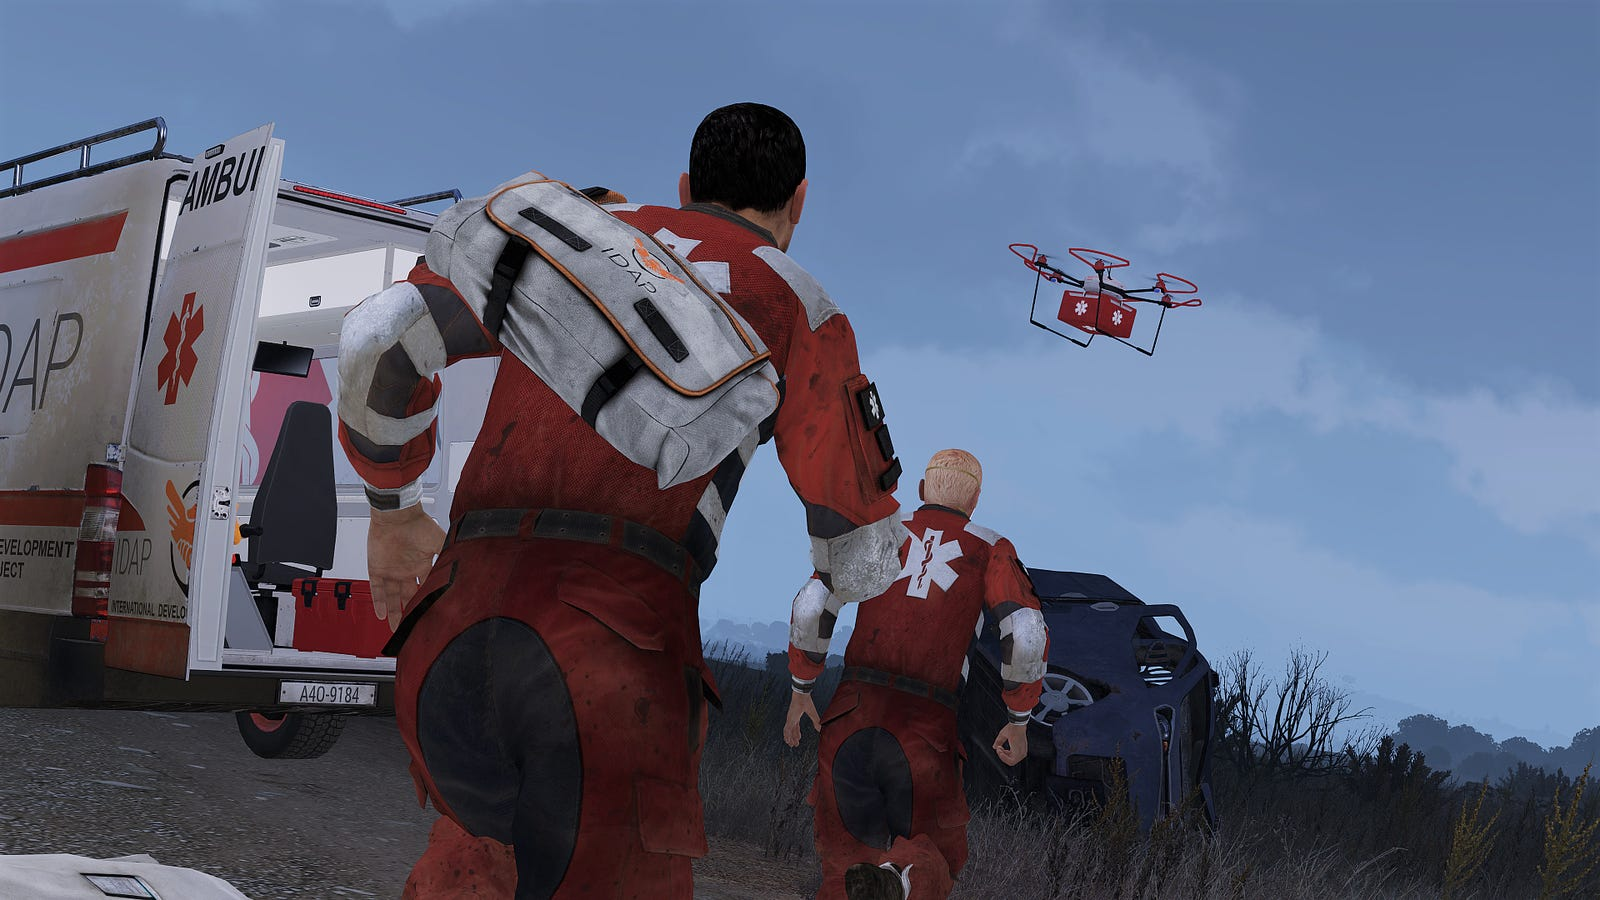 Arma Iii Dlc Will Let You Play As A Humanitarian Worker